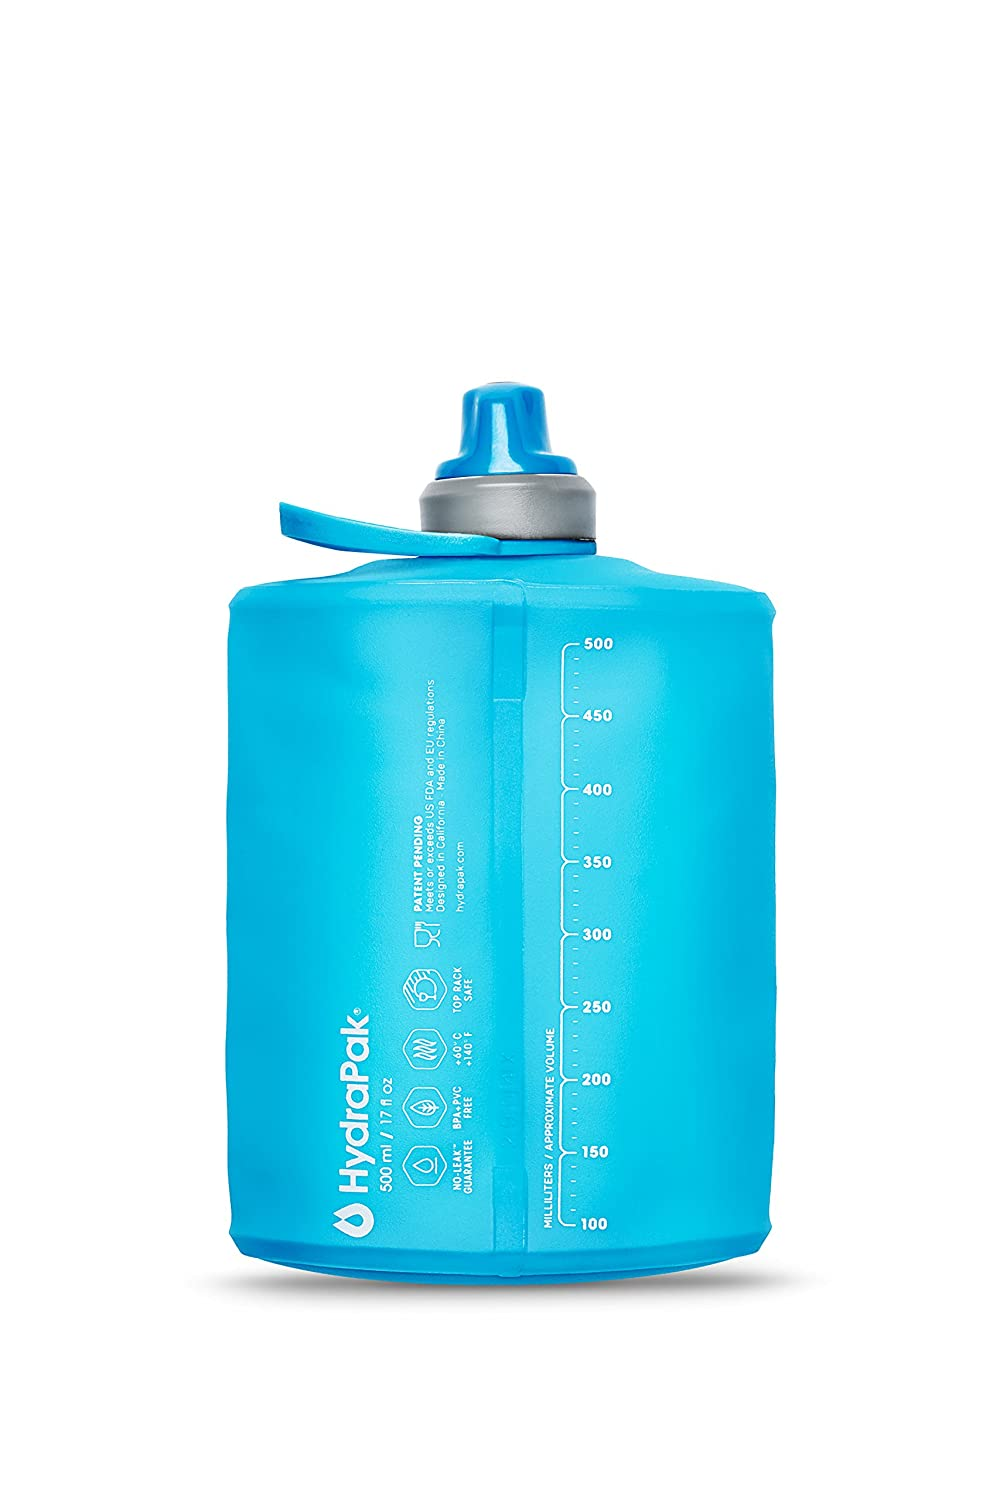 1c11b28285 Amazon.com : Hydrapak Stow - Collapsible BPA & PVC Free Water Bottle :  Sports & Outdoors